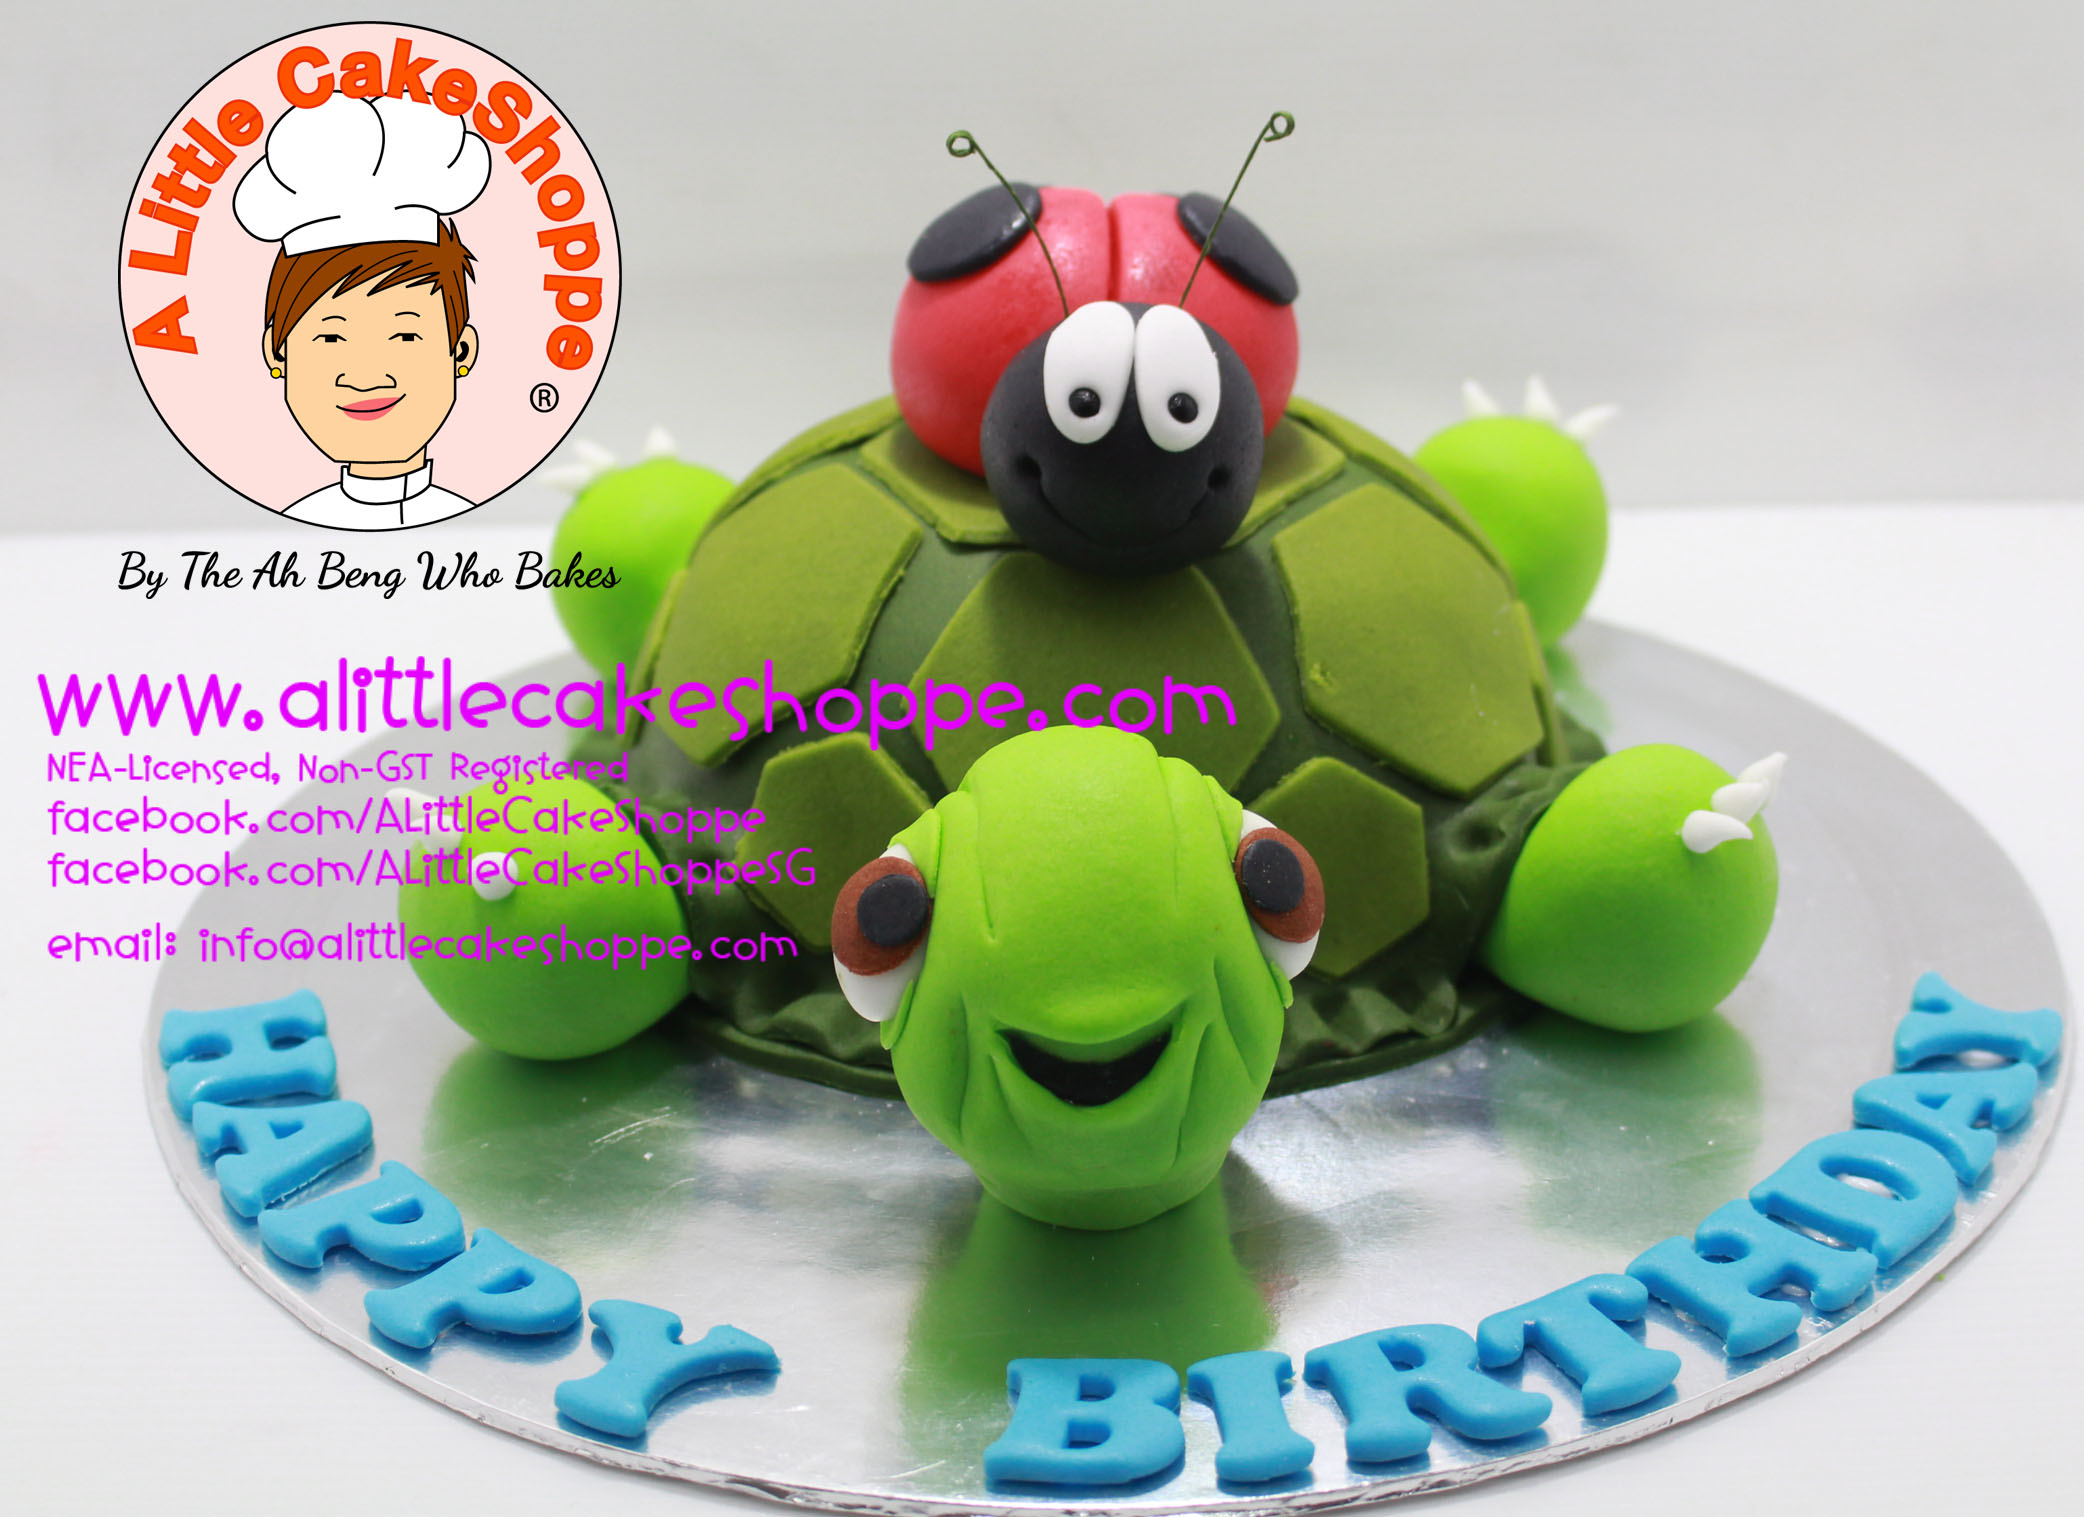 Best Customised Cake Singapore custom cake 2D 3D birthday cake cupcakes desserts wedding corporate events anniversary fondant fresh cream buttercream cakes alittlecakeshoppe a little cake shoppe compliments review singapore bakers SG cakeshop ah beng who bakes animals tortoise beetle